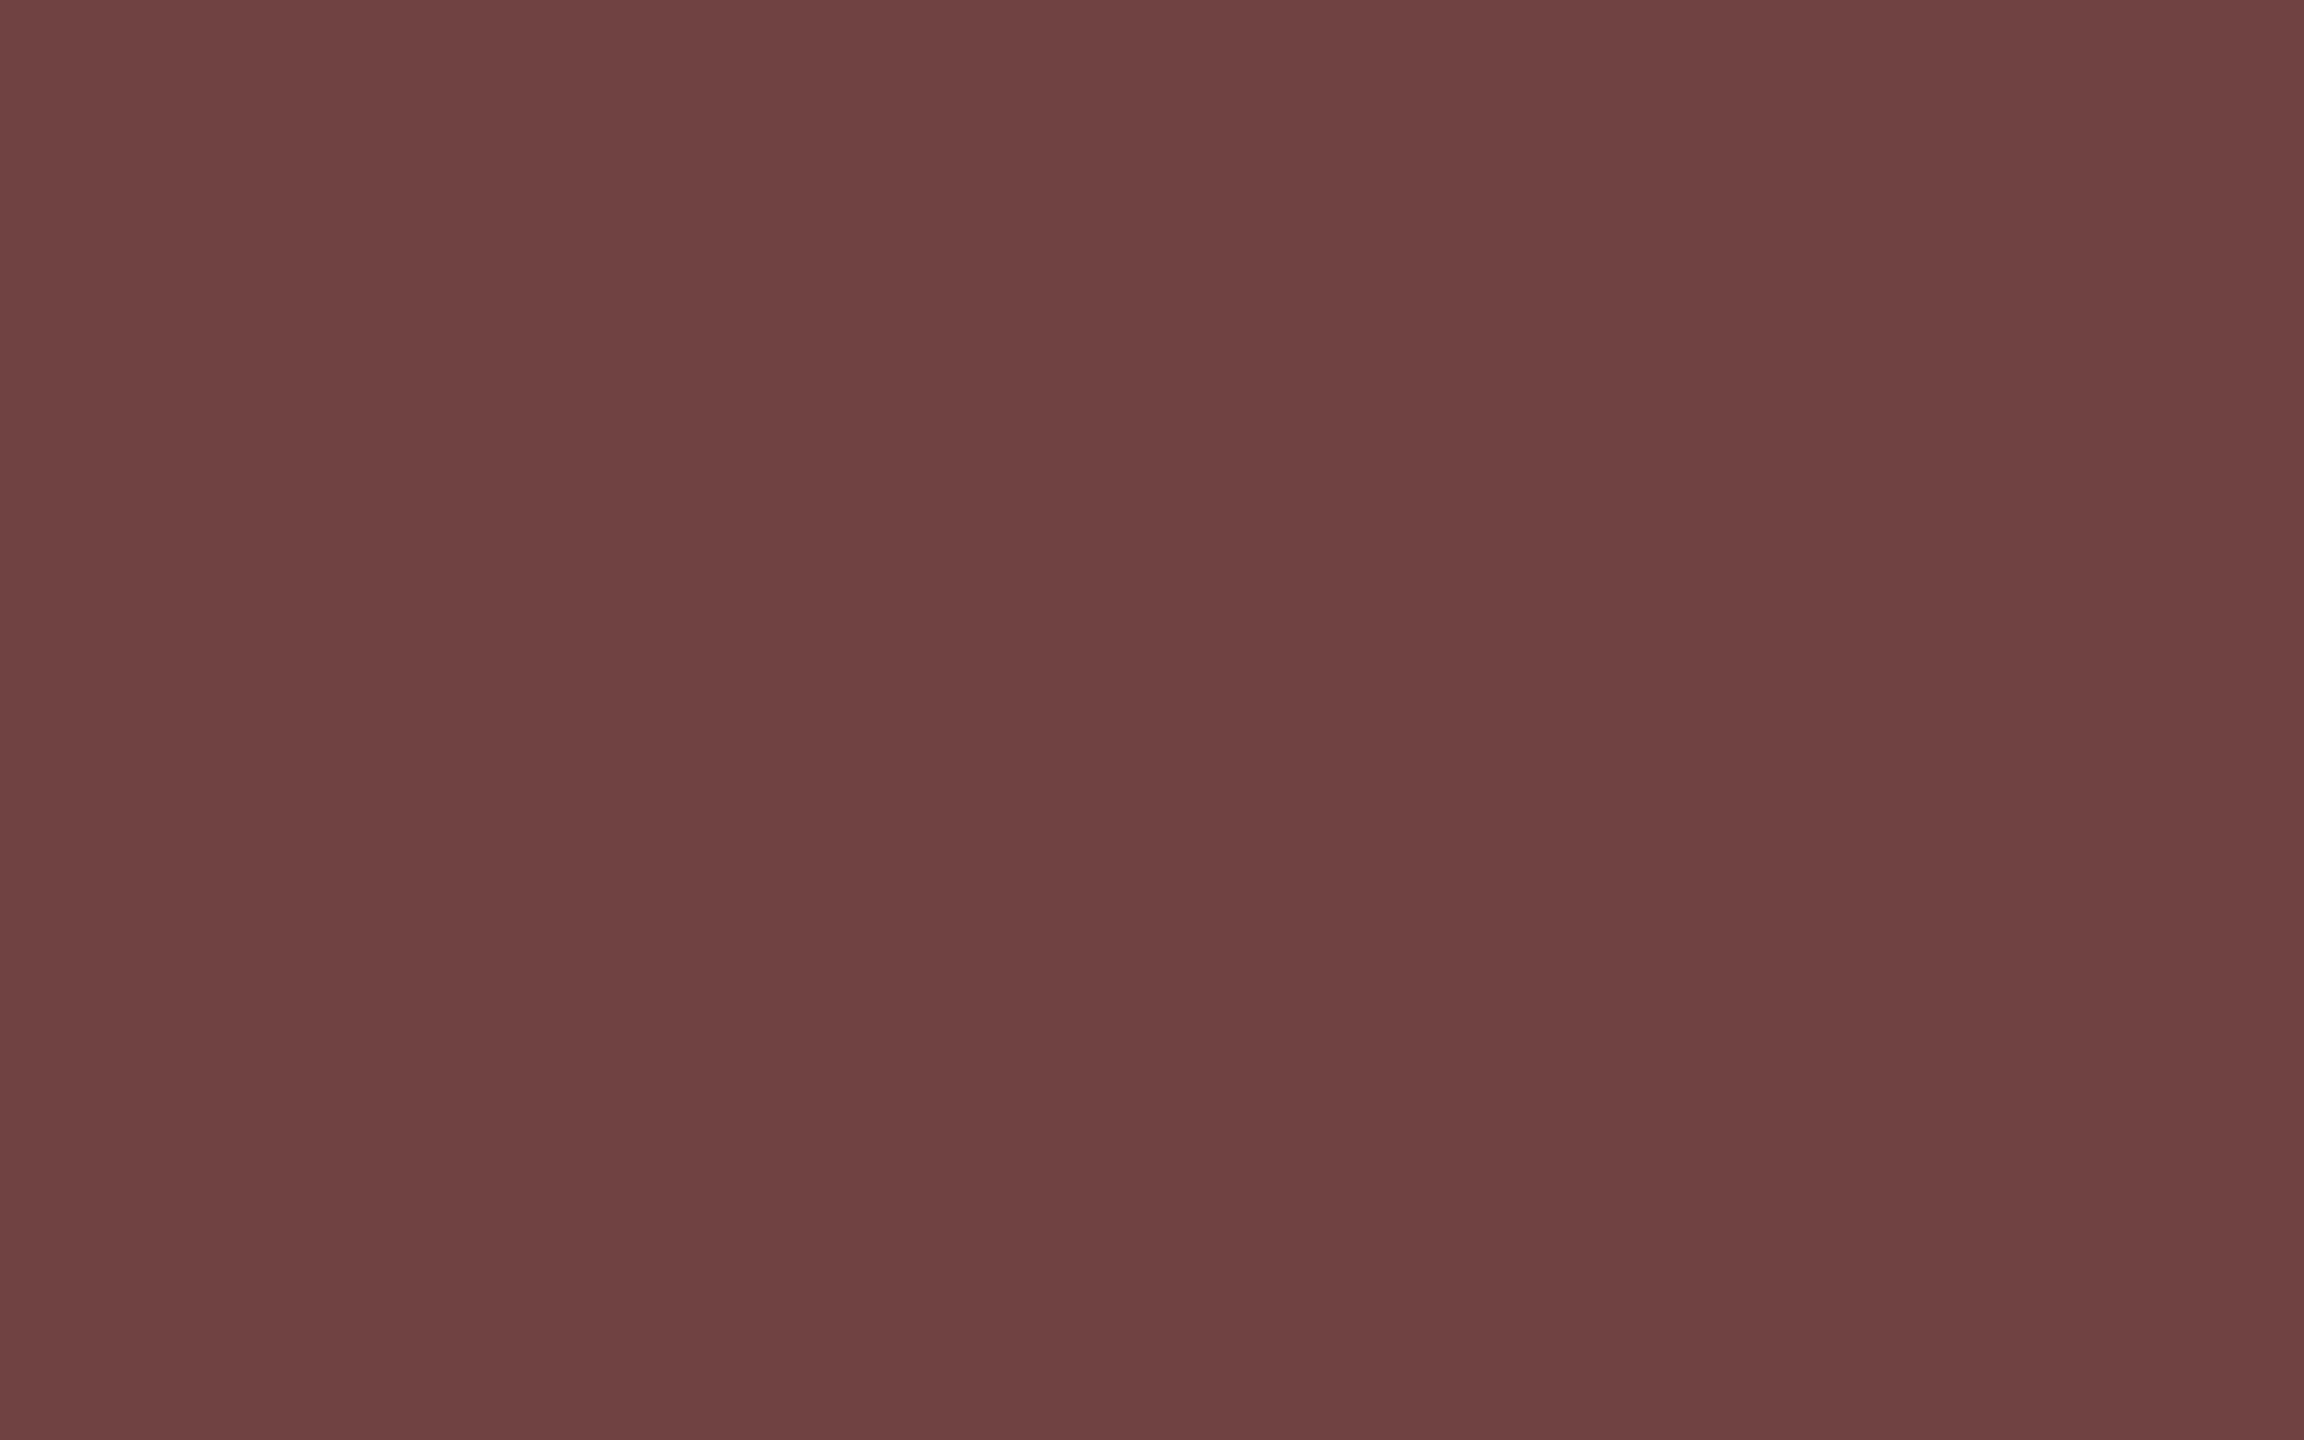 2304x1440 Deep Coffee Solid Color Background